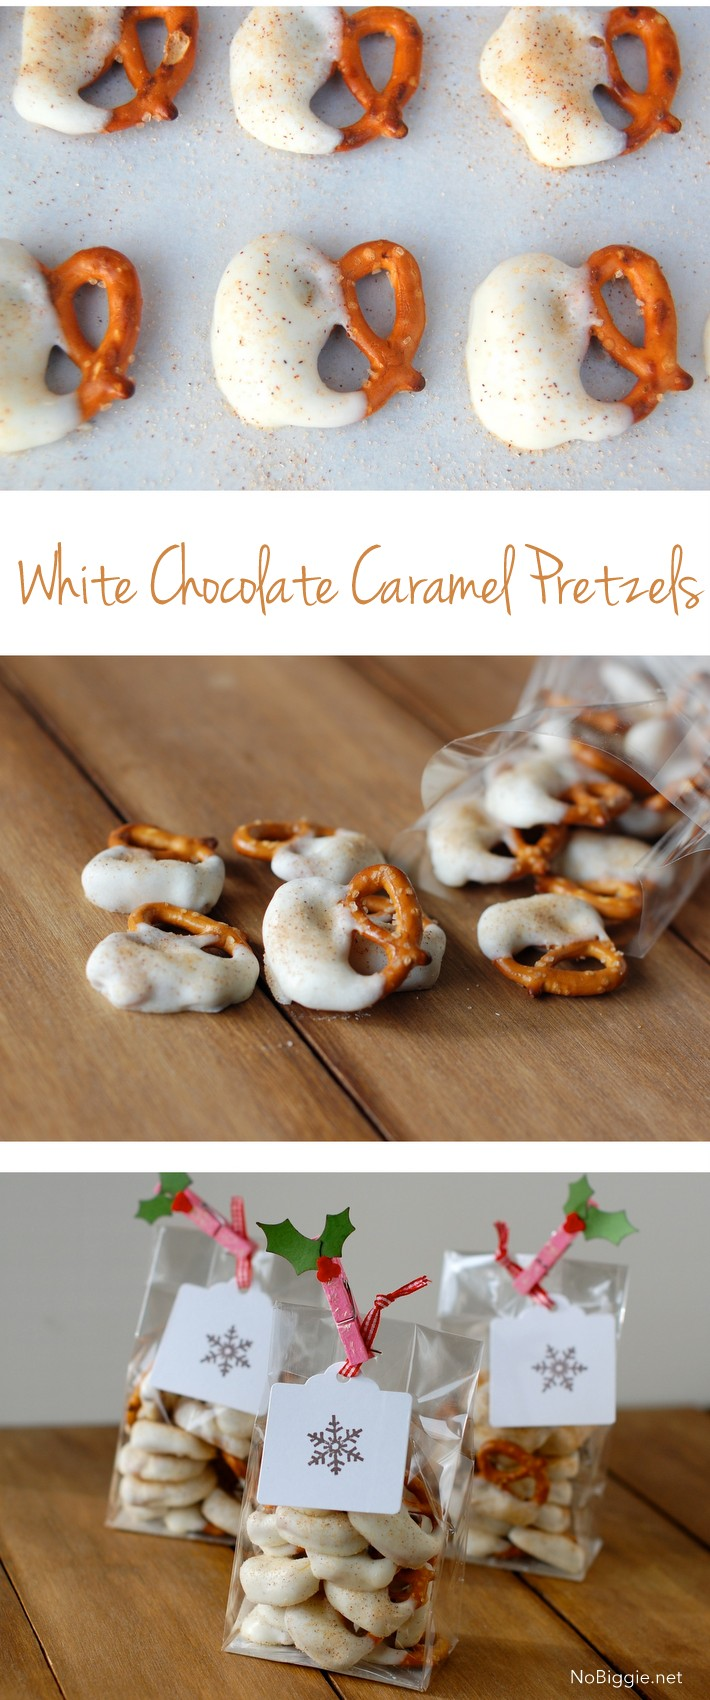 pretzels with white chocolate caramel and cinnamon - recipe on NoBiggie.net